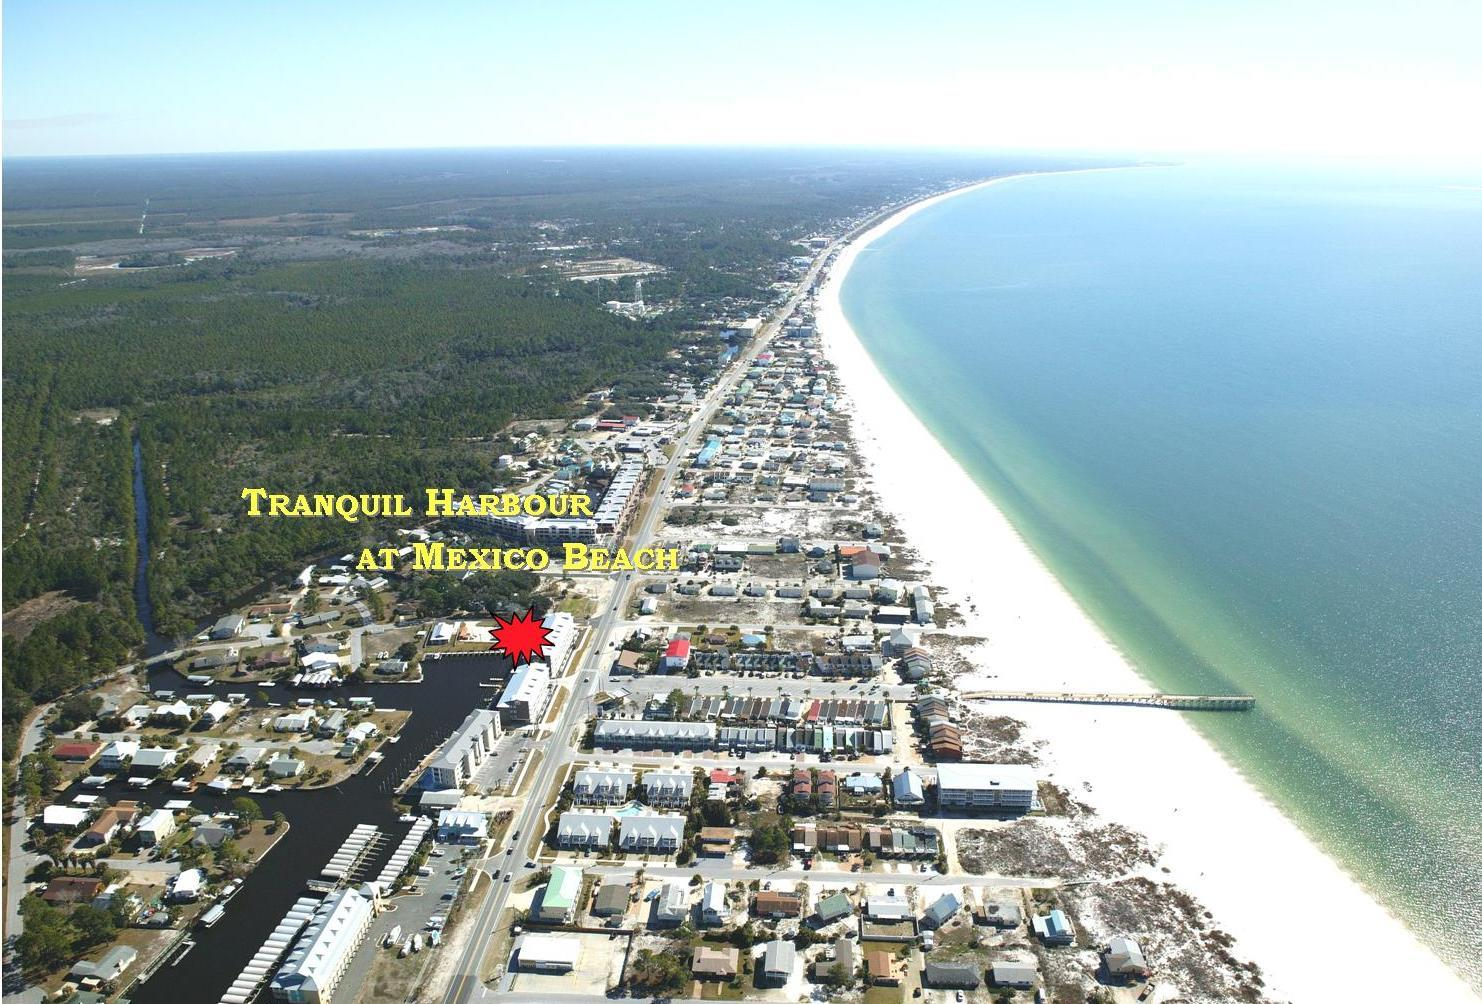 Aerial View of Tranquil Harbour Location at Mexico Beach Florida